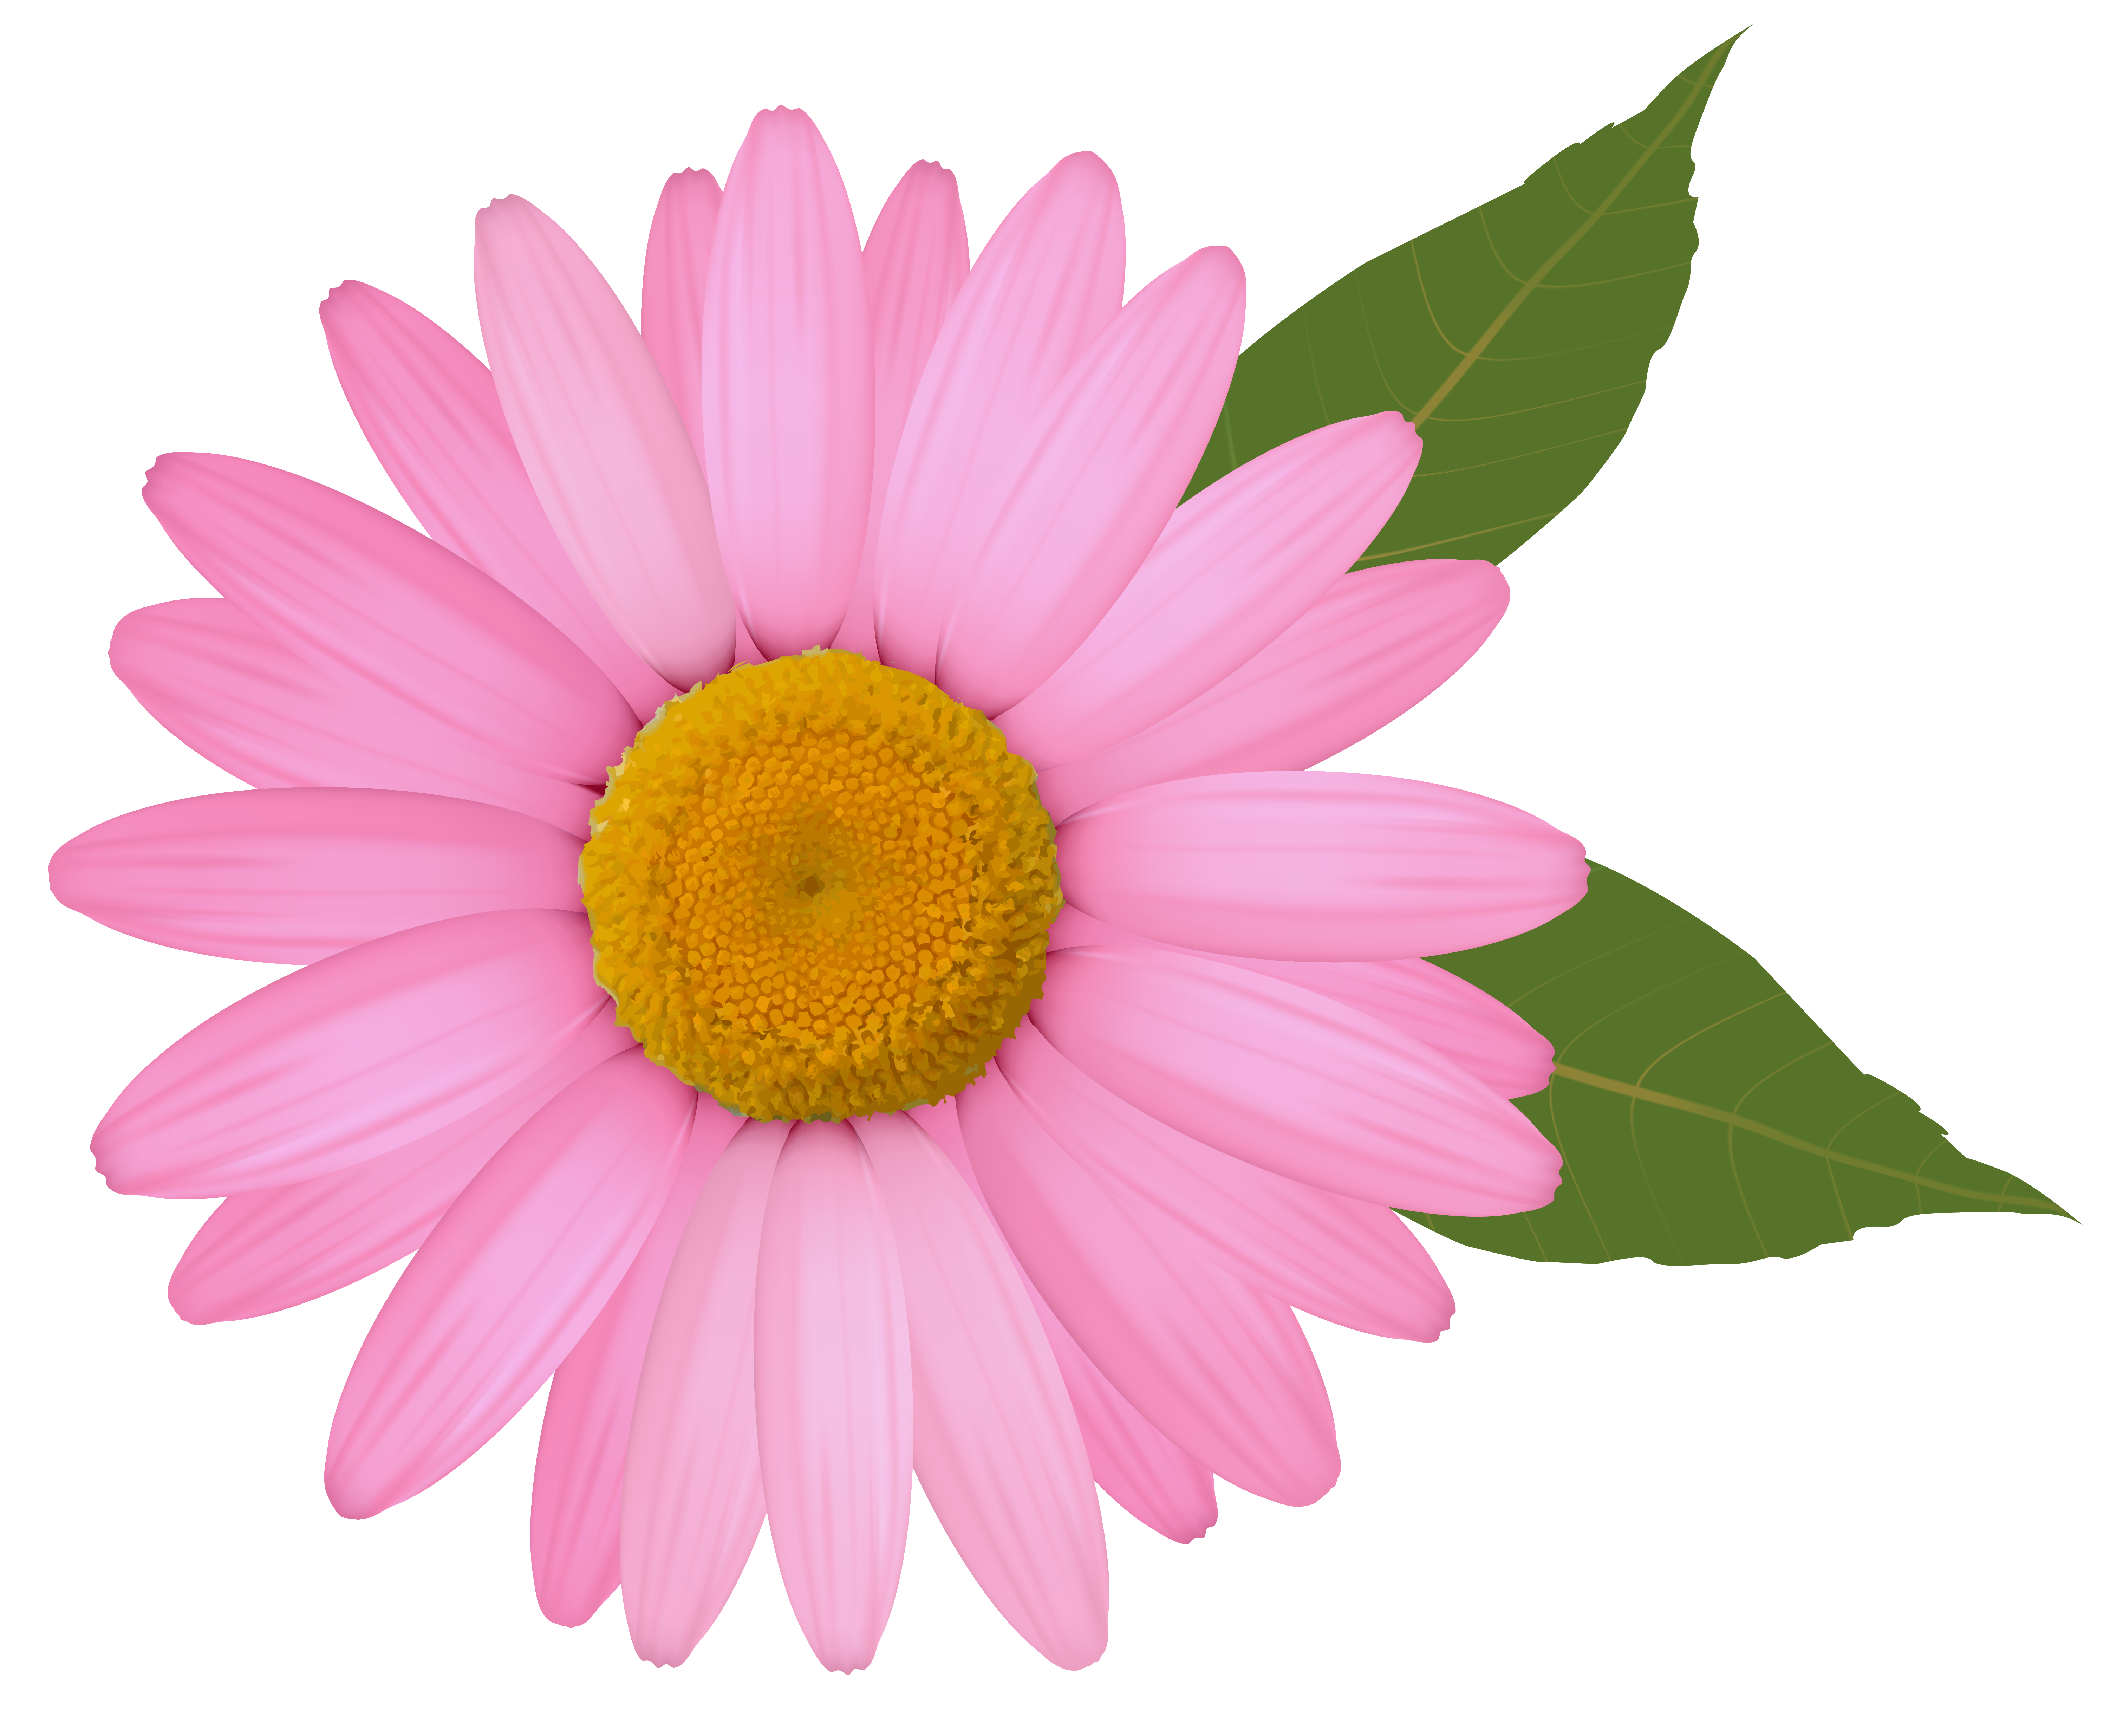 clip art transparent download Daisy clipart. Pink png image gallery